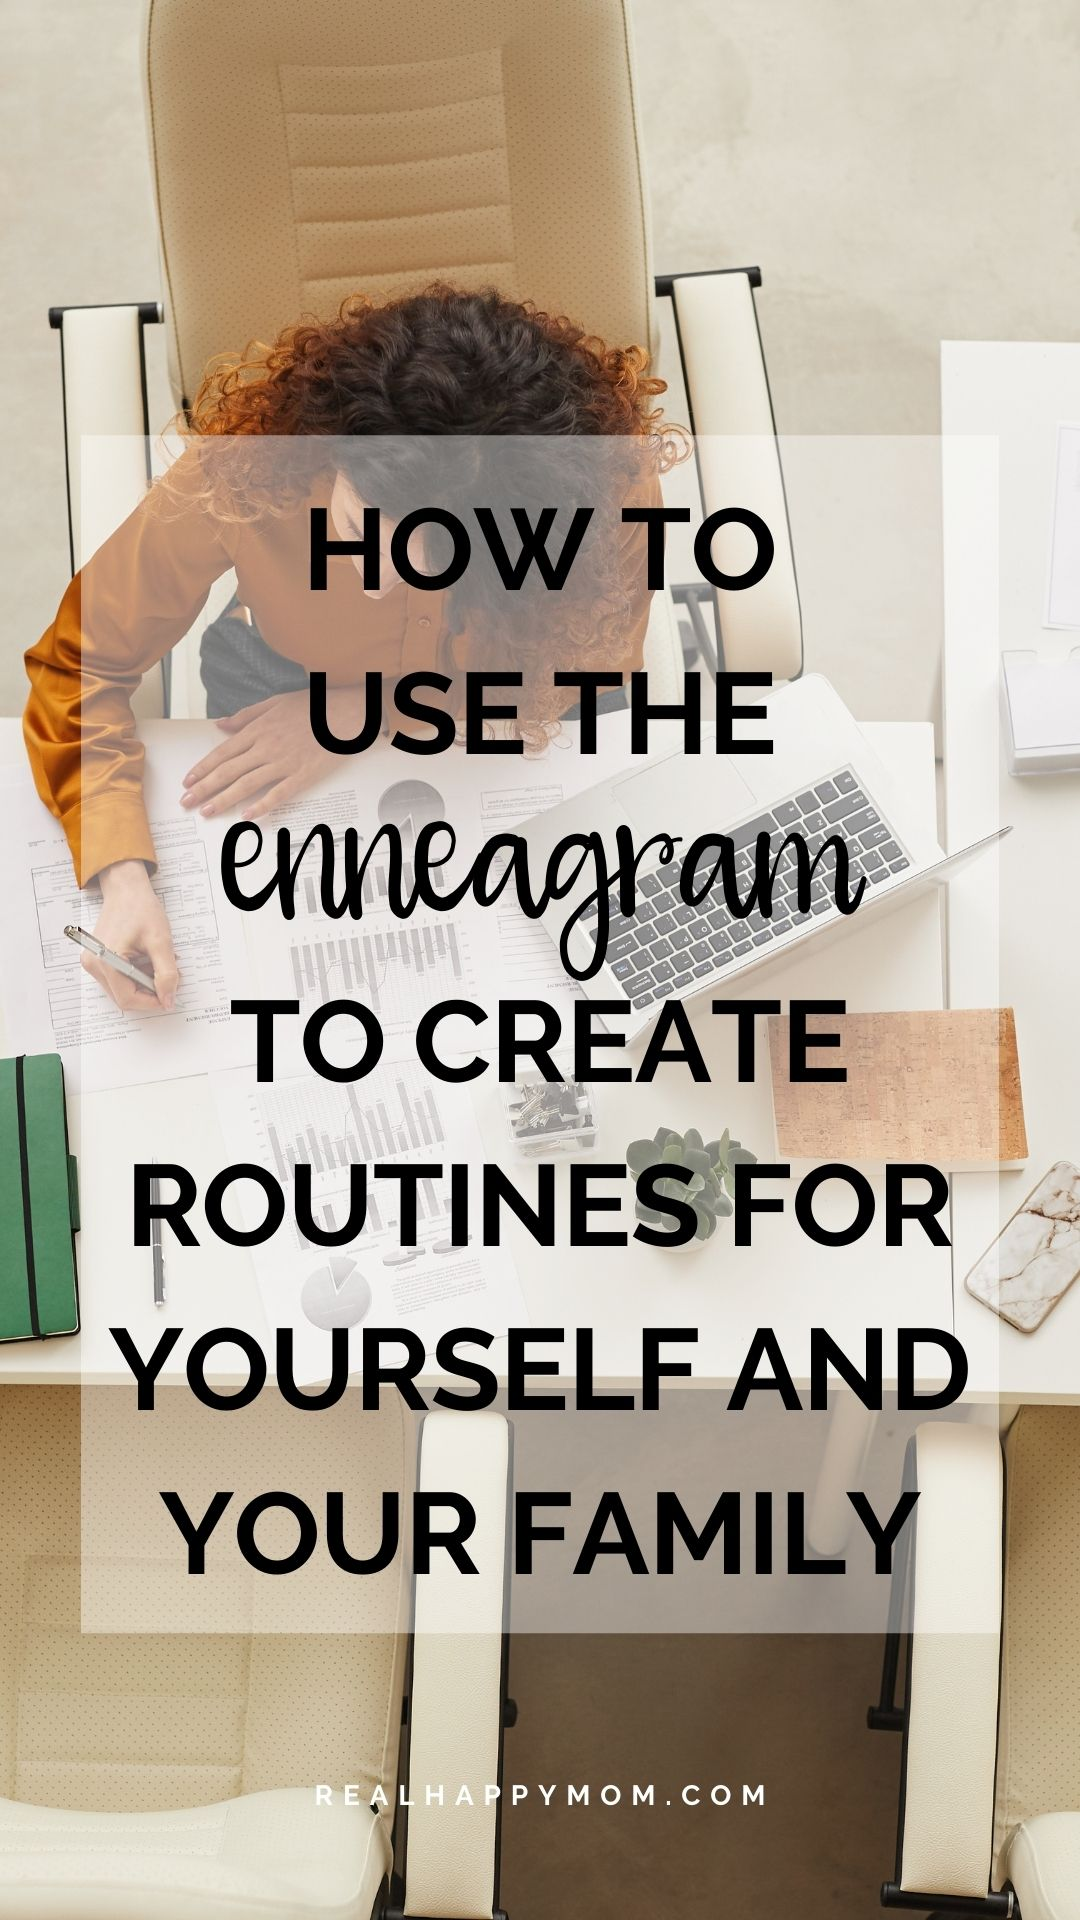 How to Use the Enneagram to Create Routines from Yourself and Your Family